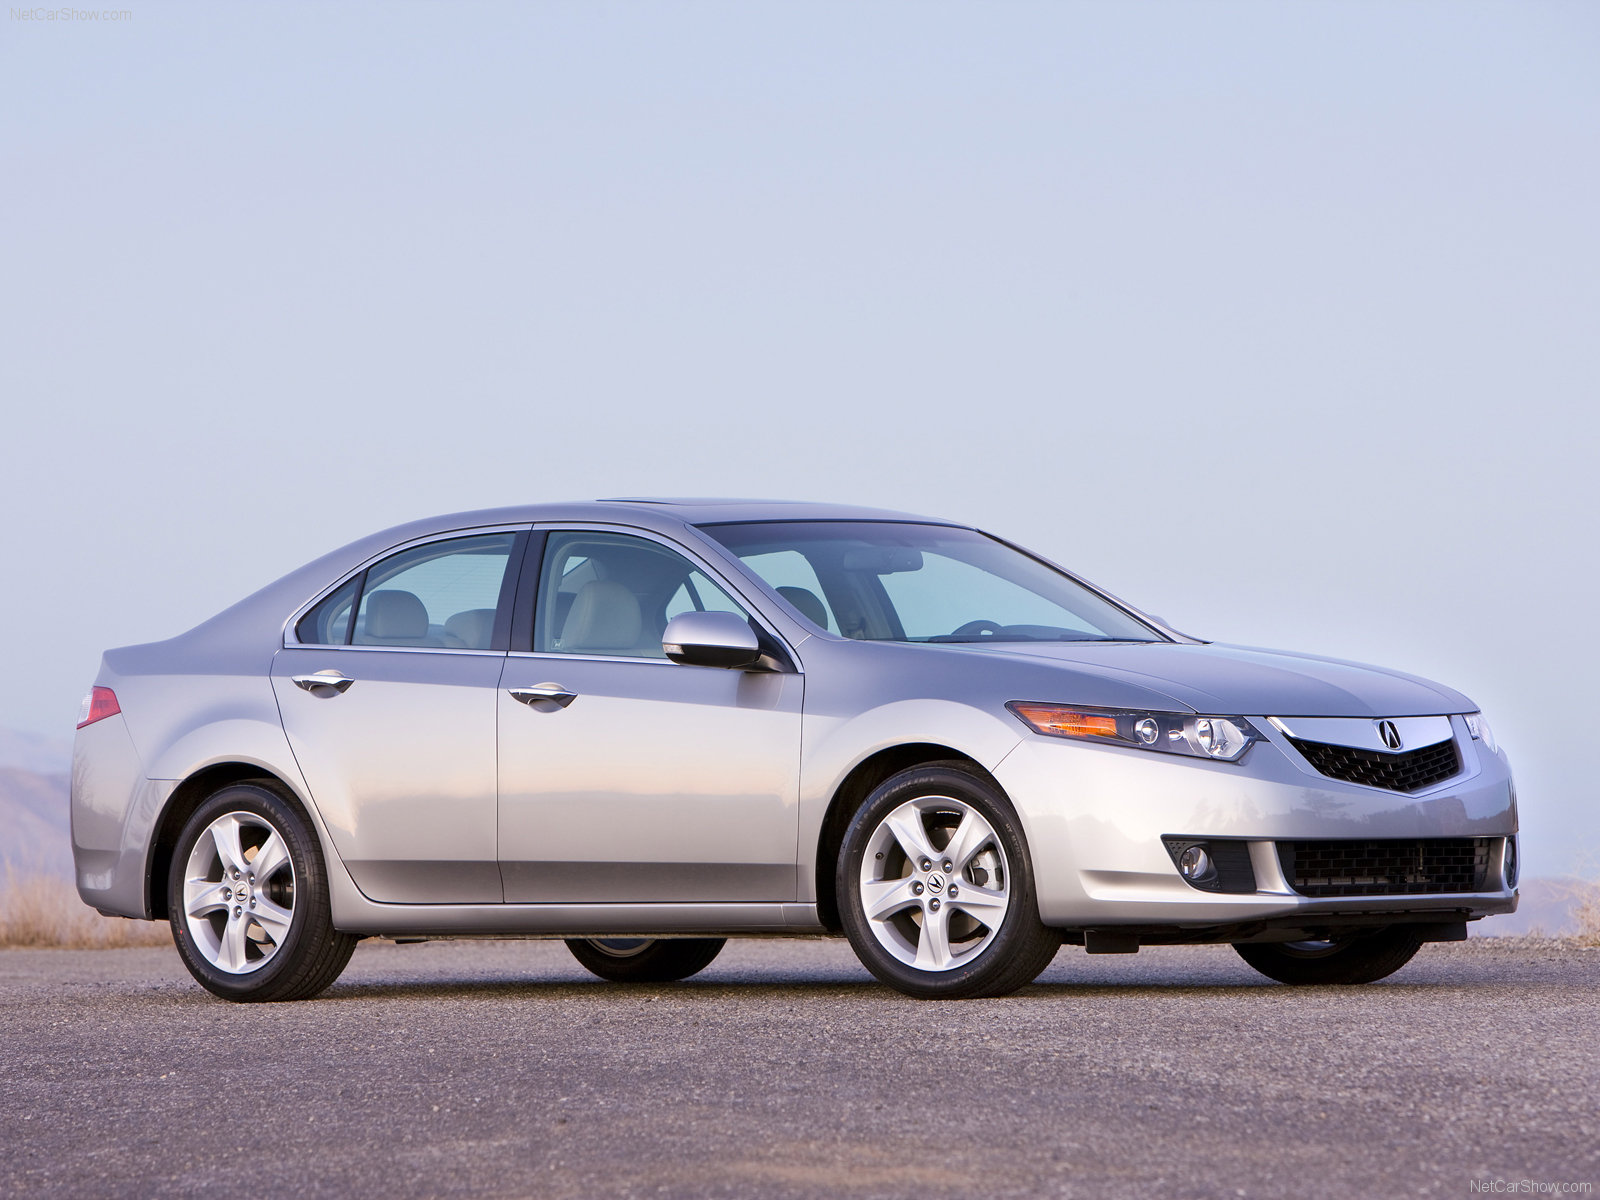 Tuning Acura TSX sedan 2009 online, accessories and spare